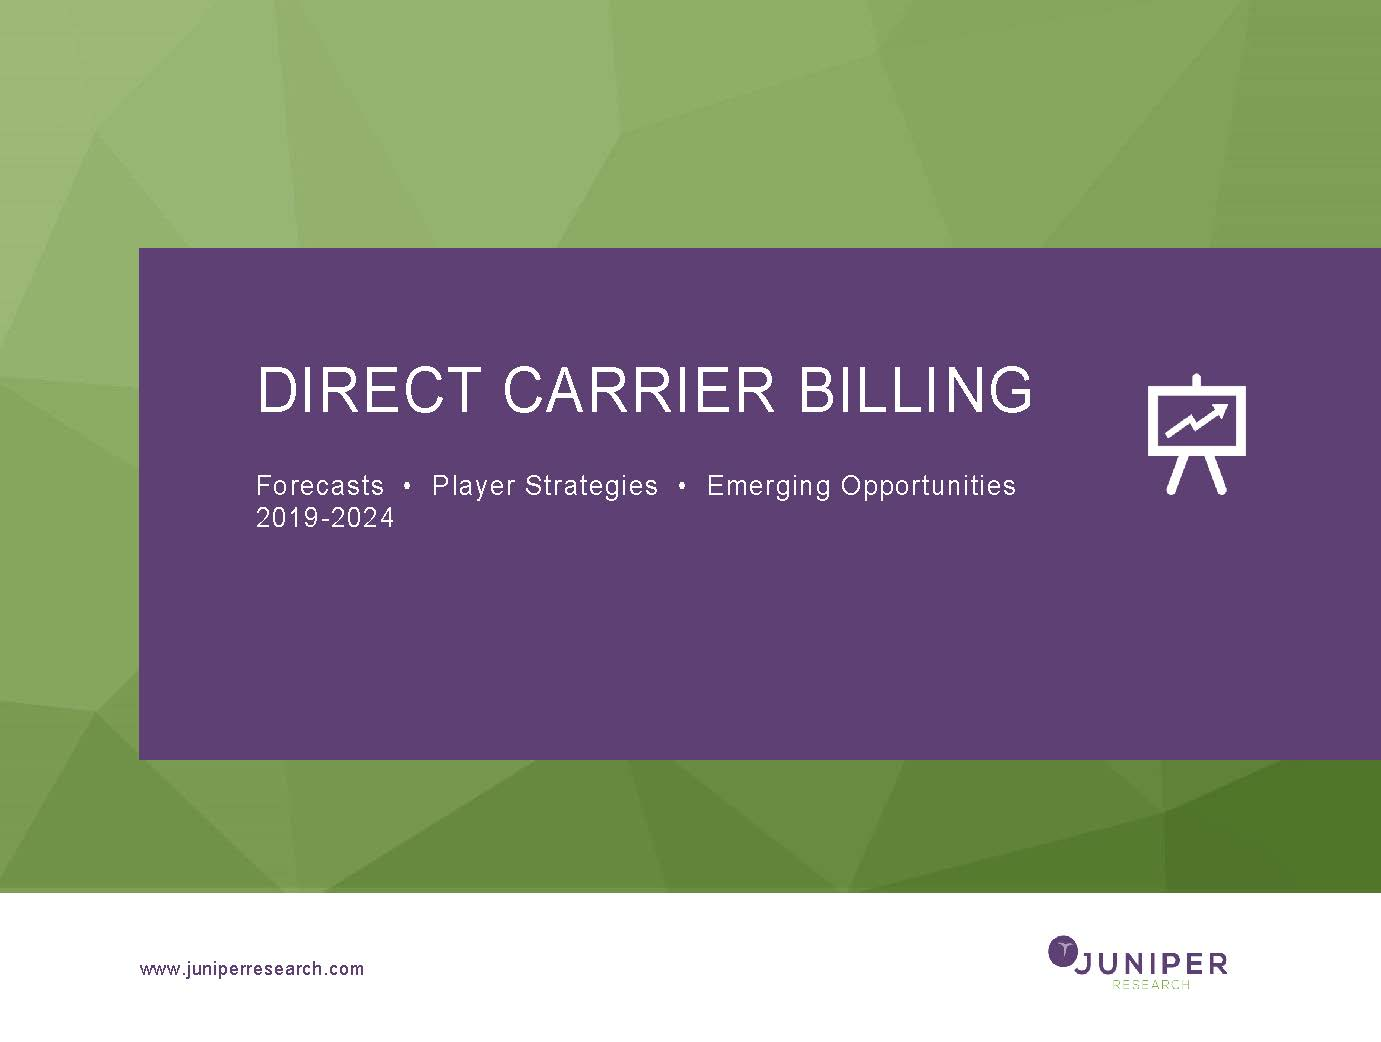 Direct Carrier Billing: Forecasts, Player Strategies & Emerging Opportunities 2019-2024